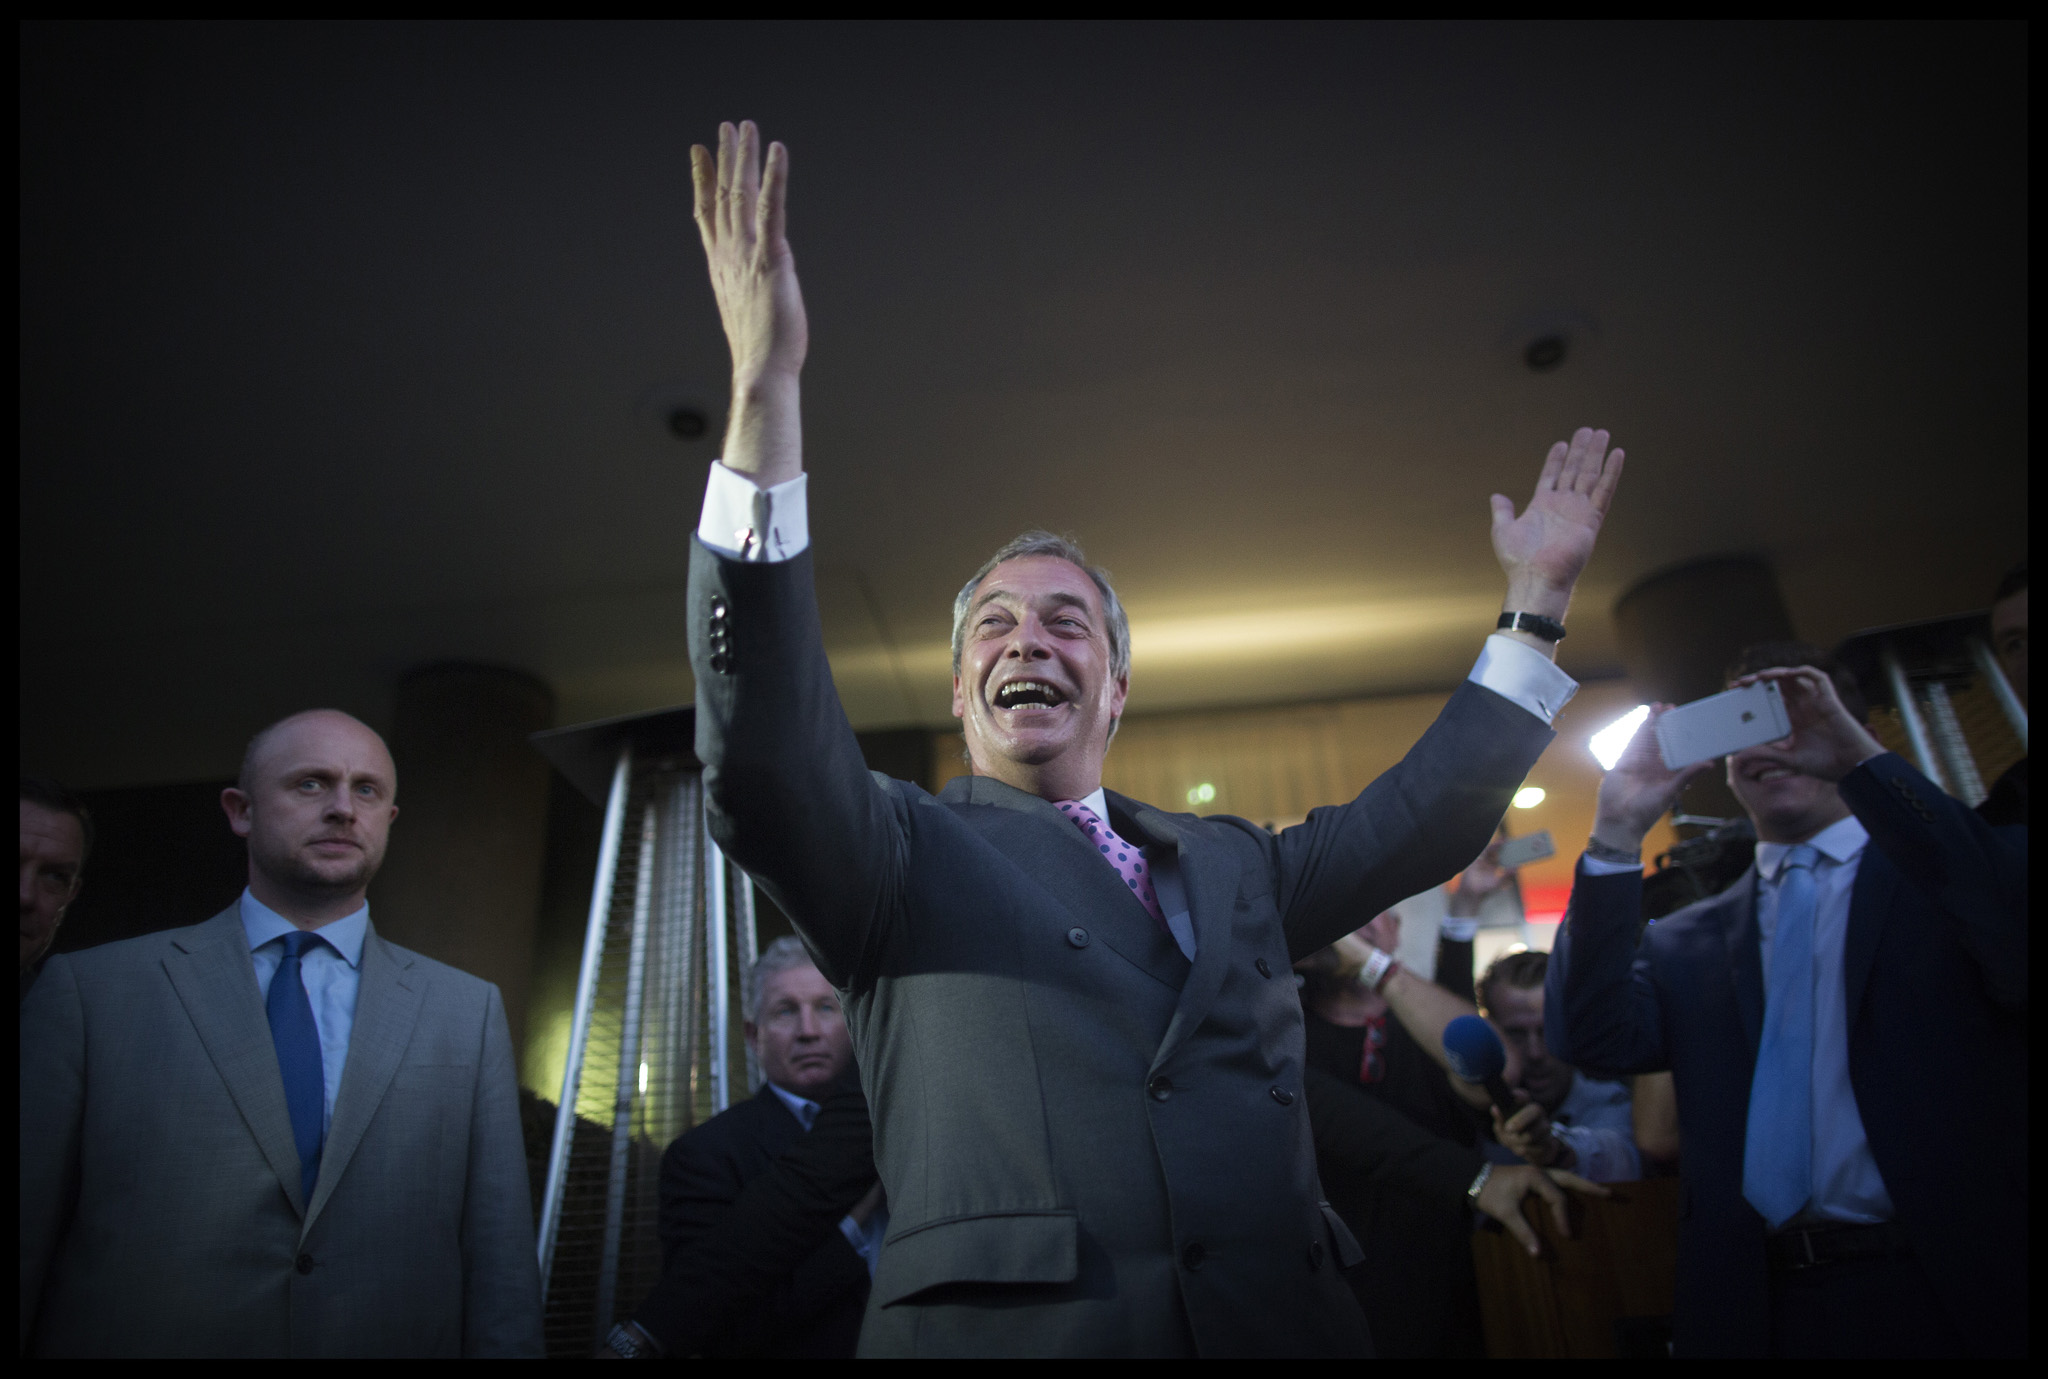 Leader of UKIP, Nigel Farage, celebrates victory in the EU Referendum at the leave.eu party in Milbank, London.